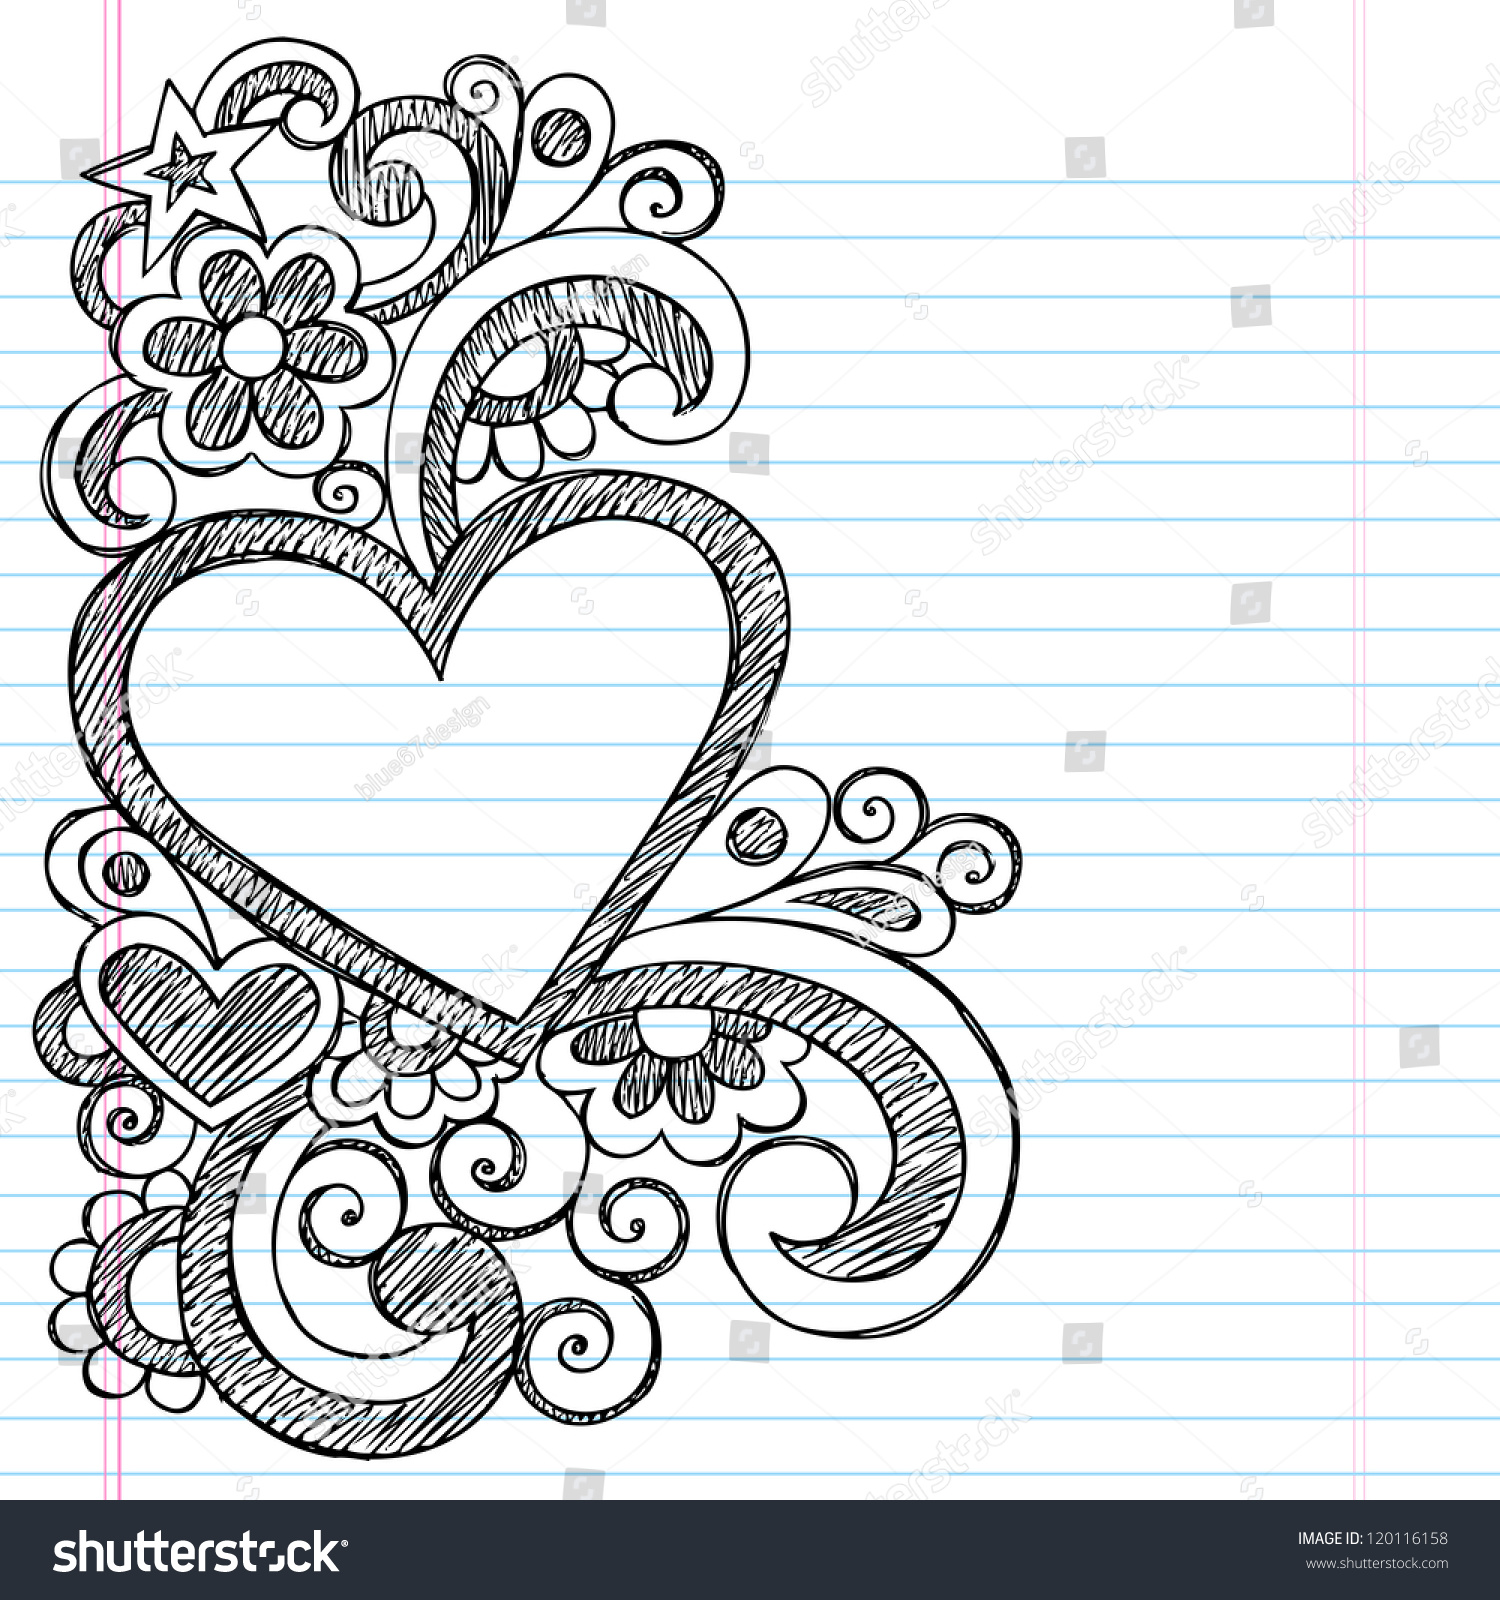 Heart Frame Border Back School Sketchy Stock Vector ...